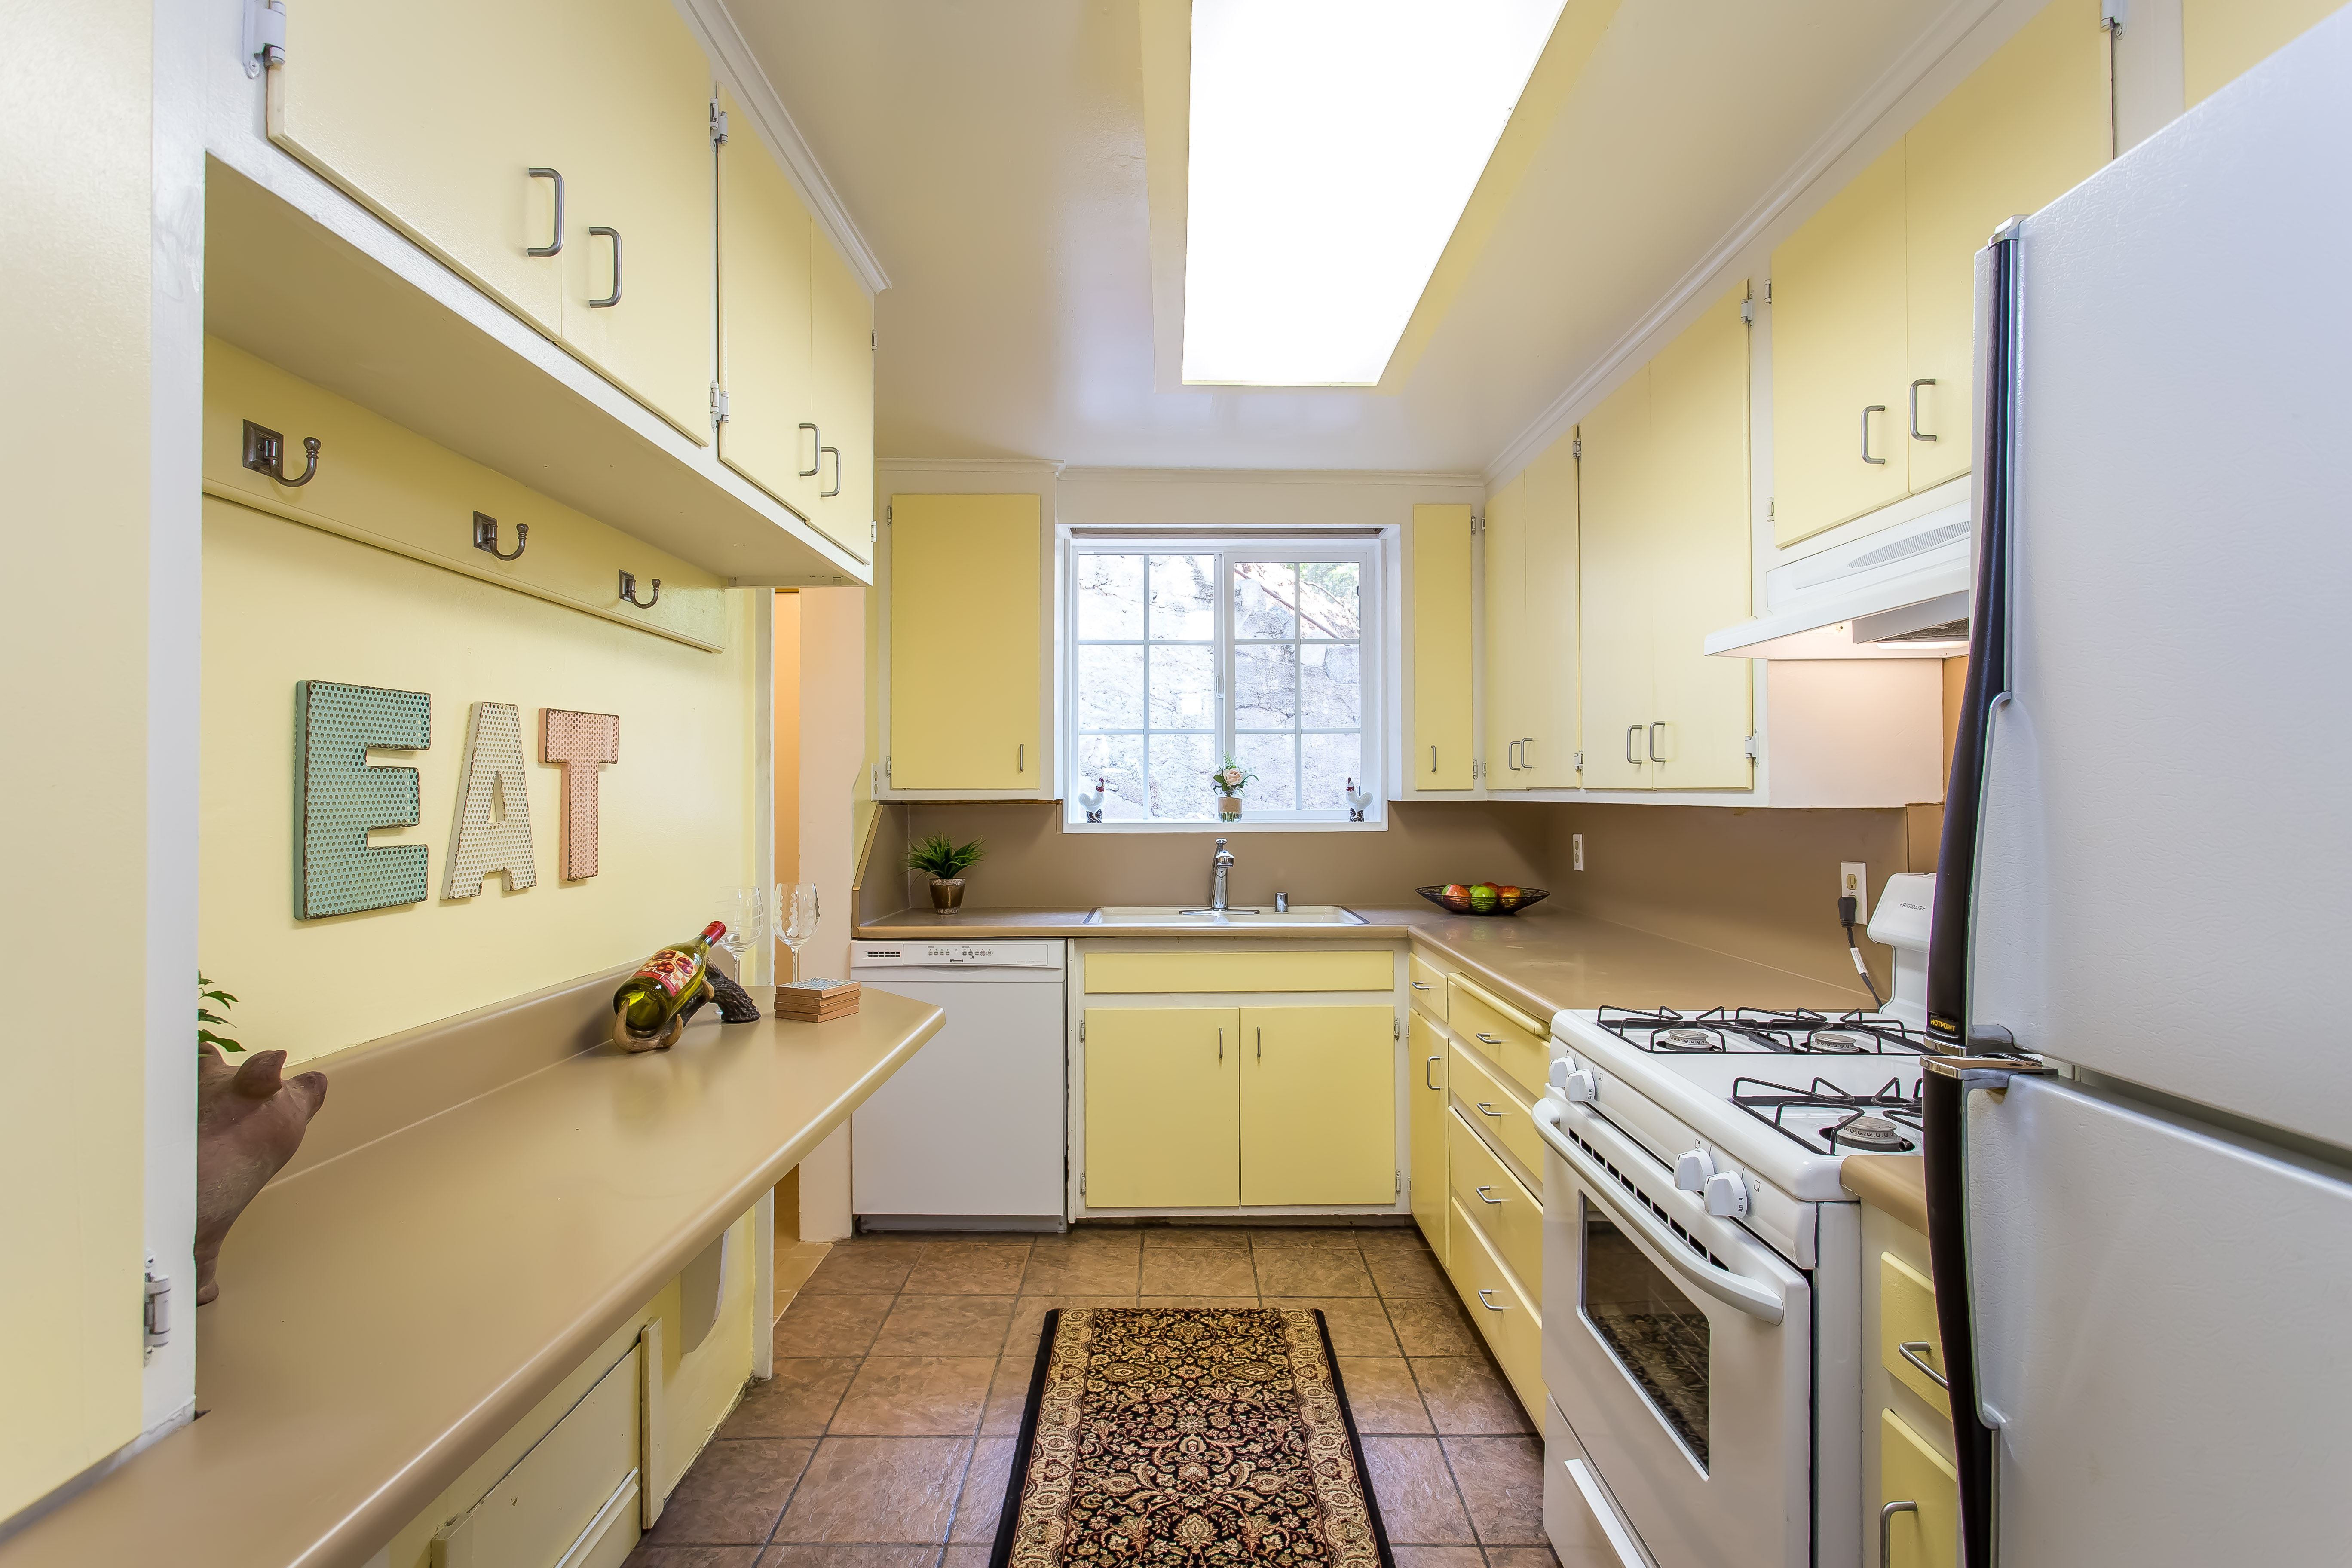 in burbank one bedroom house with rooftop deck asks 549k curbed la kitchen bedroom with wide window